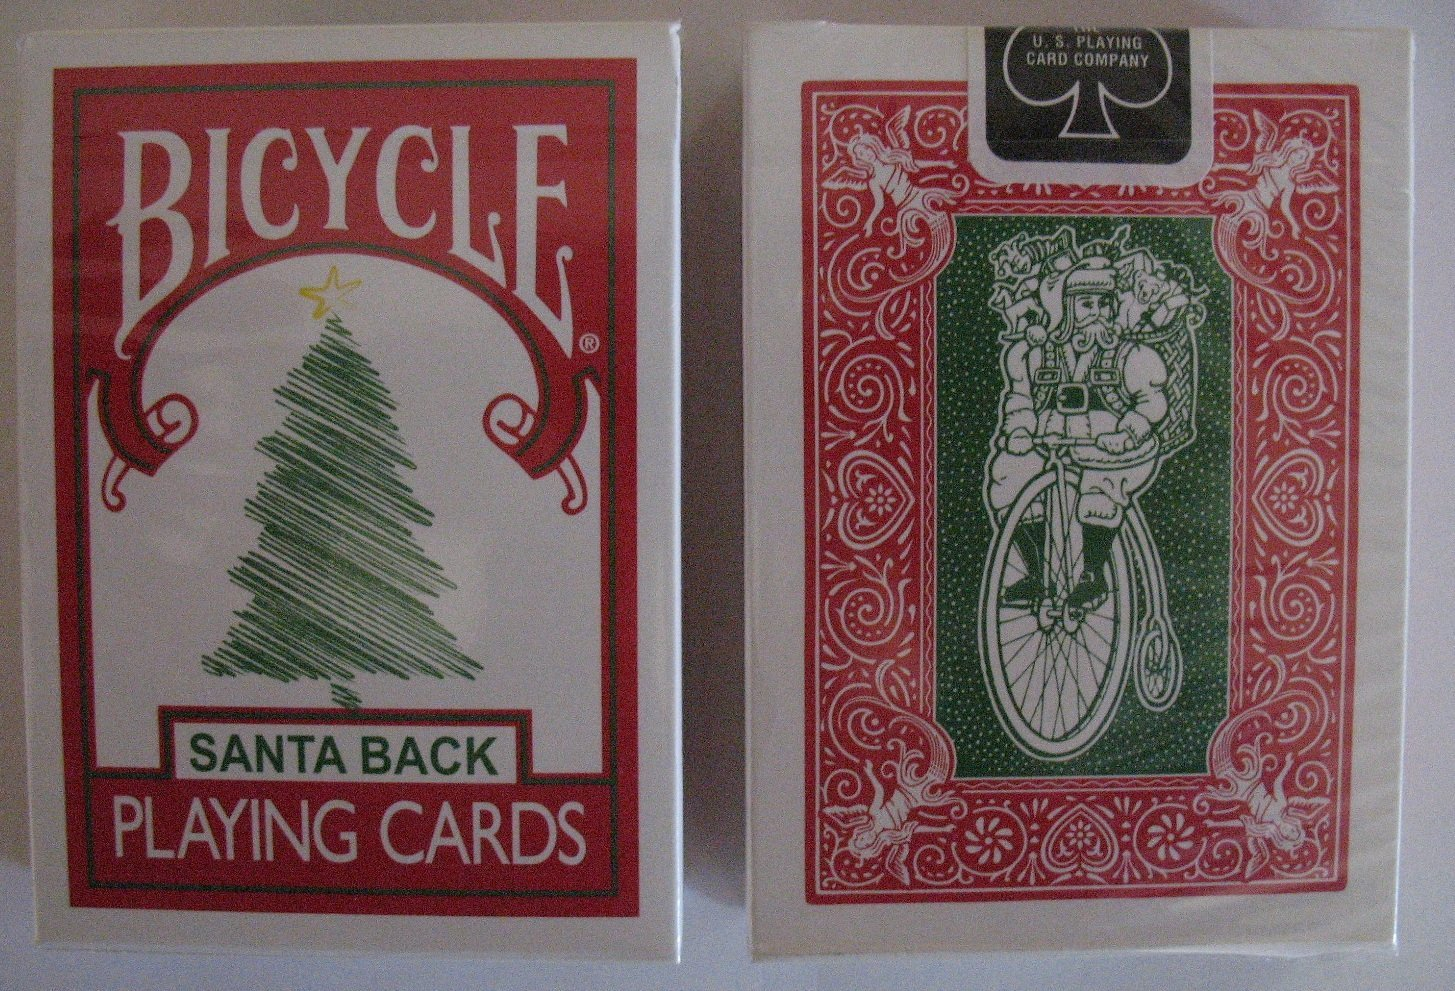 Bicycle 225 Red Deck Green Santa Maiden Back Playing Cards collectible playing cards, magic cards, bicyle playing cards